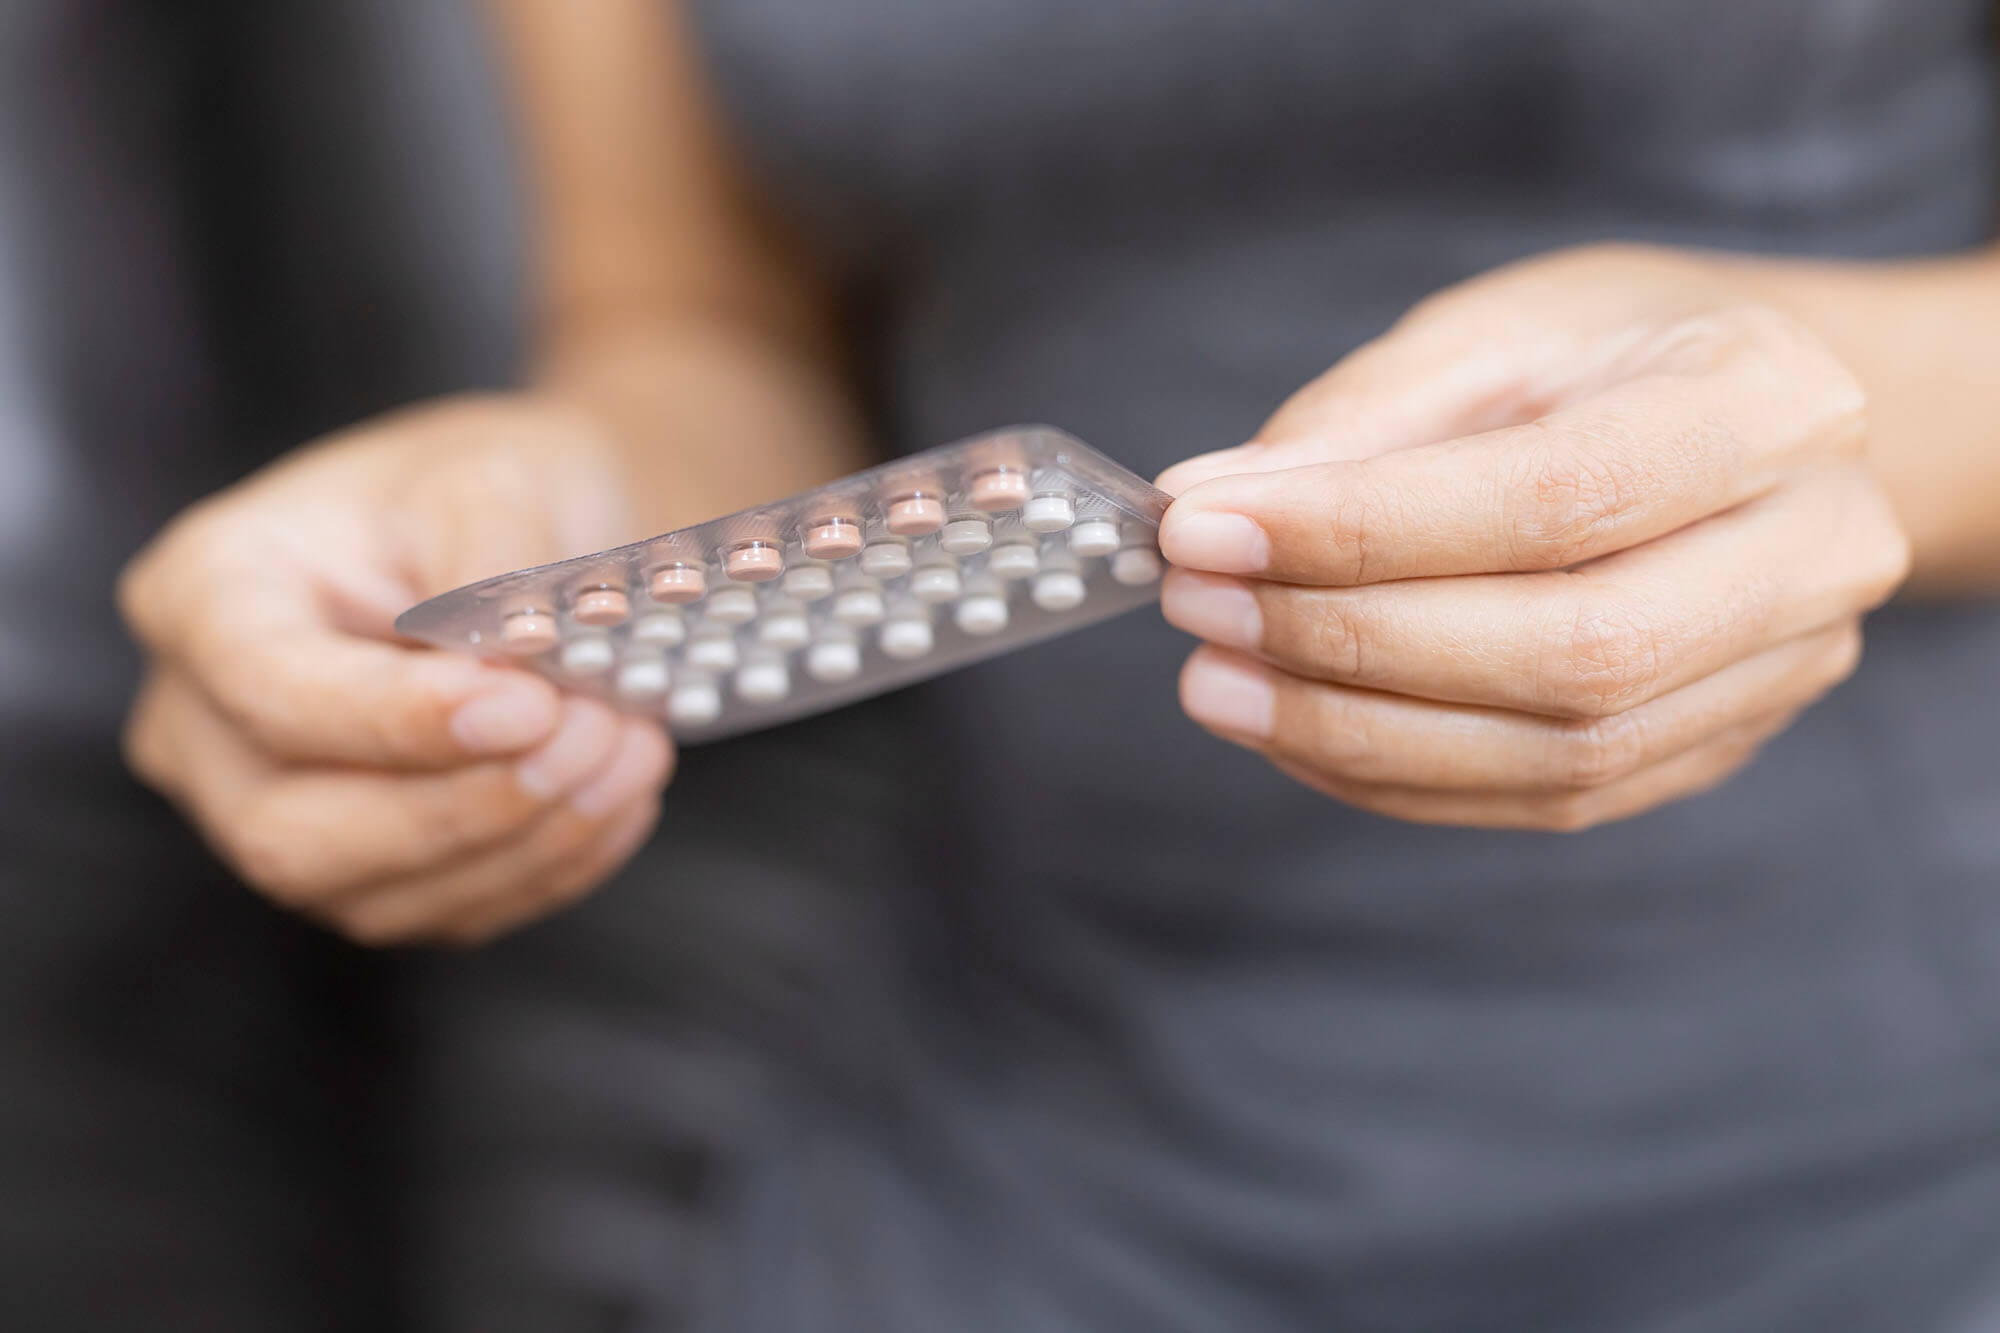 Oral contraceptives help prevent ovarian and endometrial cancer for up to 35 years after stopping